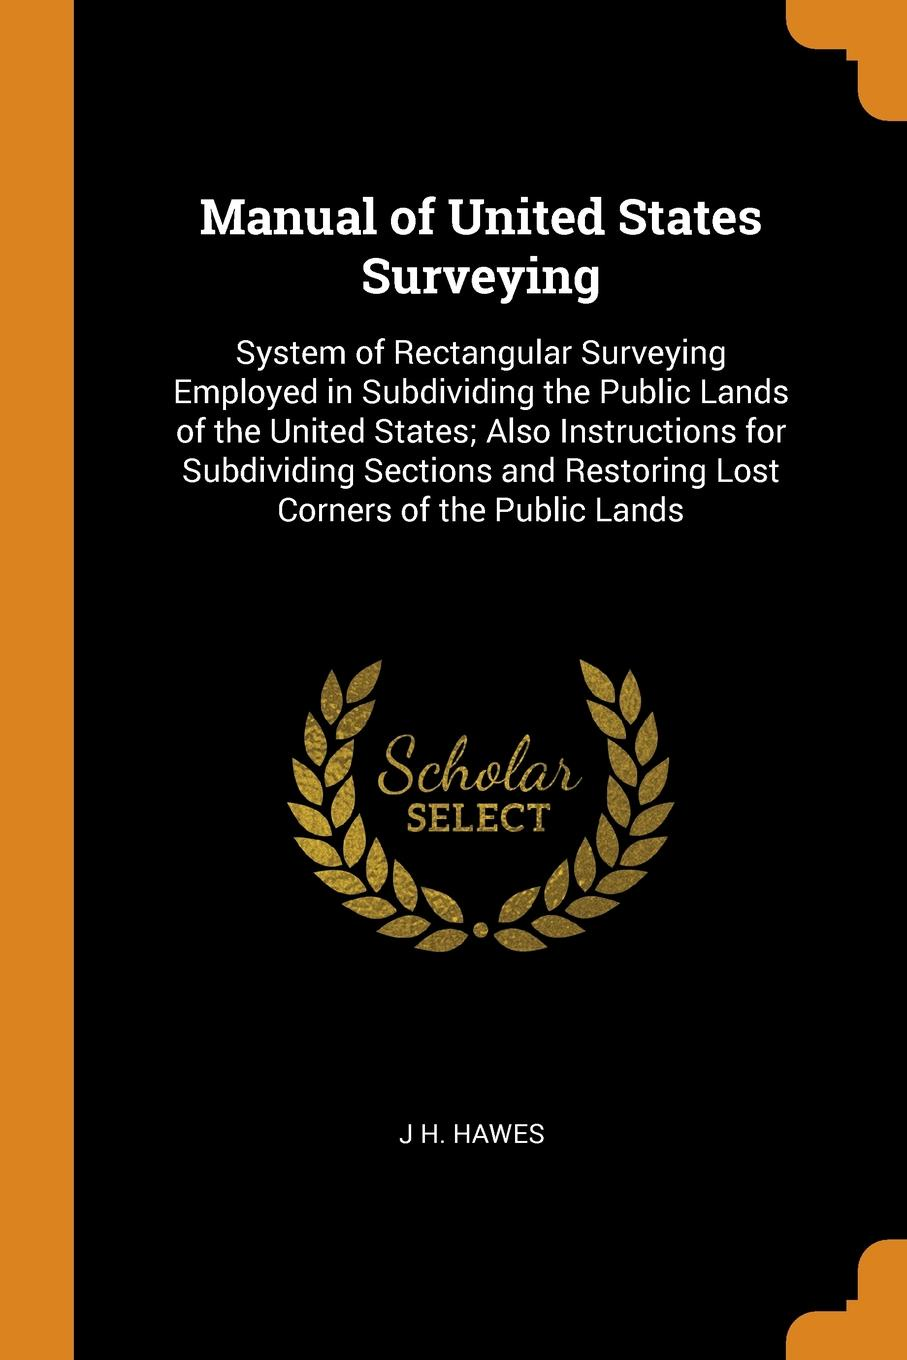 Manual of United States Surveying. System of Rectangular Surveying Employed in Subdividing the Public Lands of the United States; Also Instructions for Subdividing Sections and Restoring Lost Corners of the Public Lands. J H. Hawes